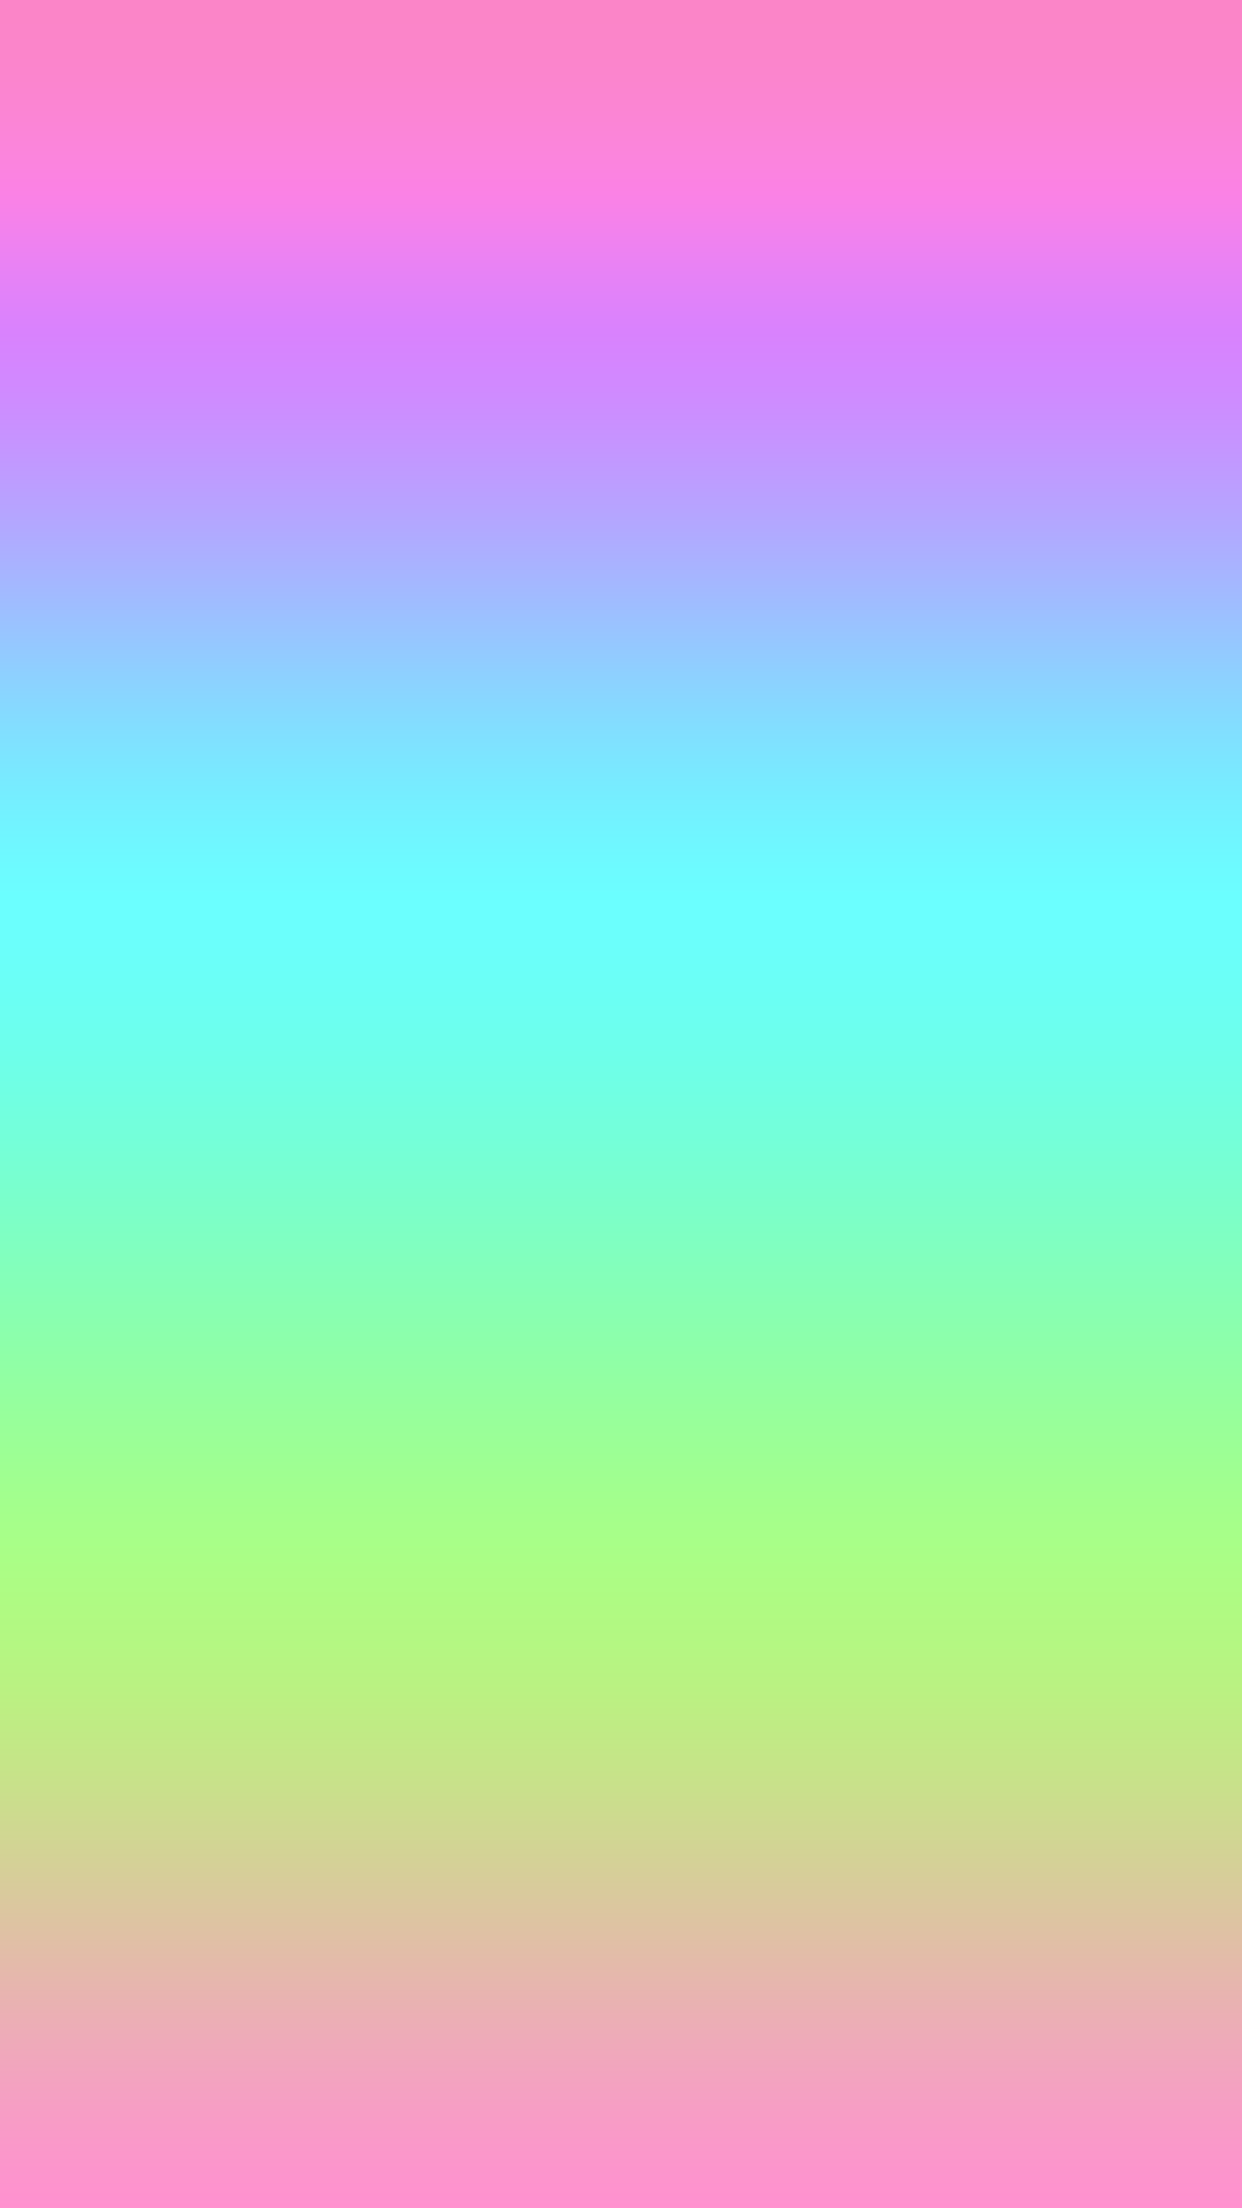 Gra nt ombre pink blue purple green wallpaper hd iPhone